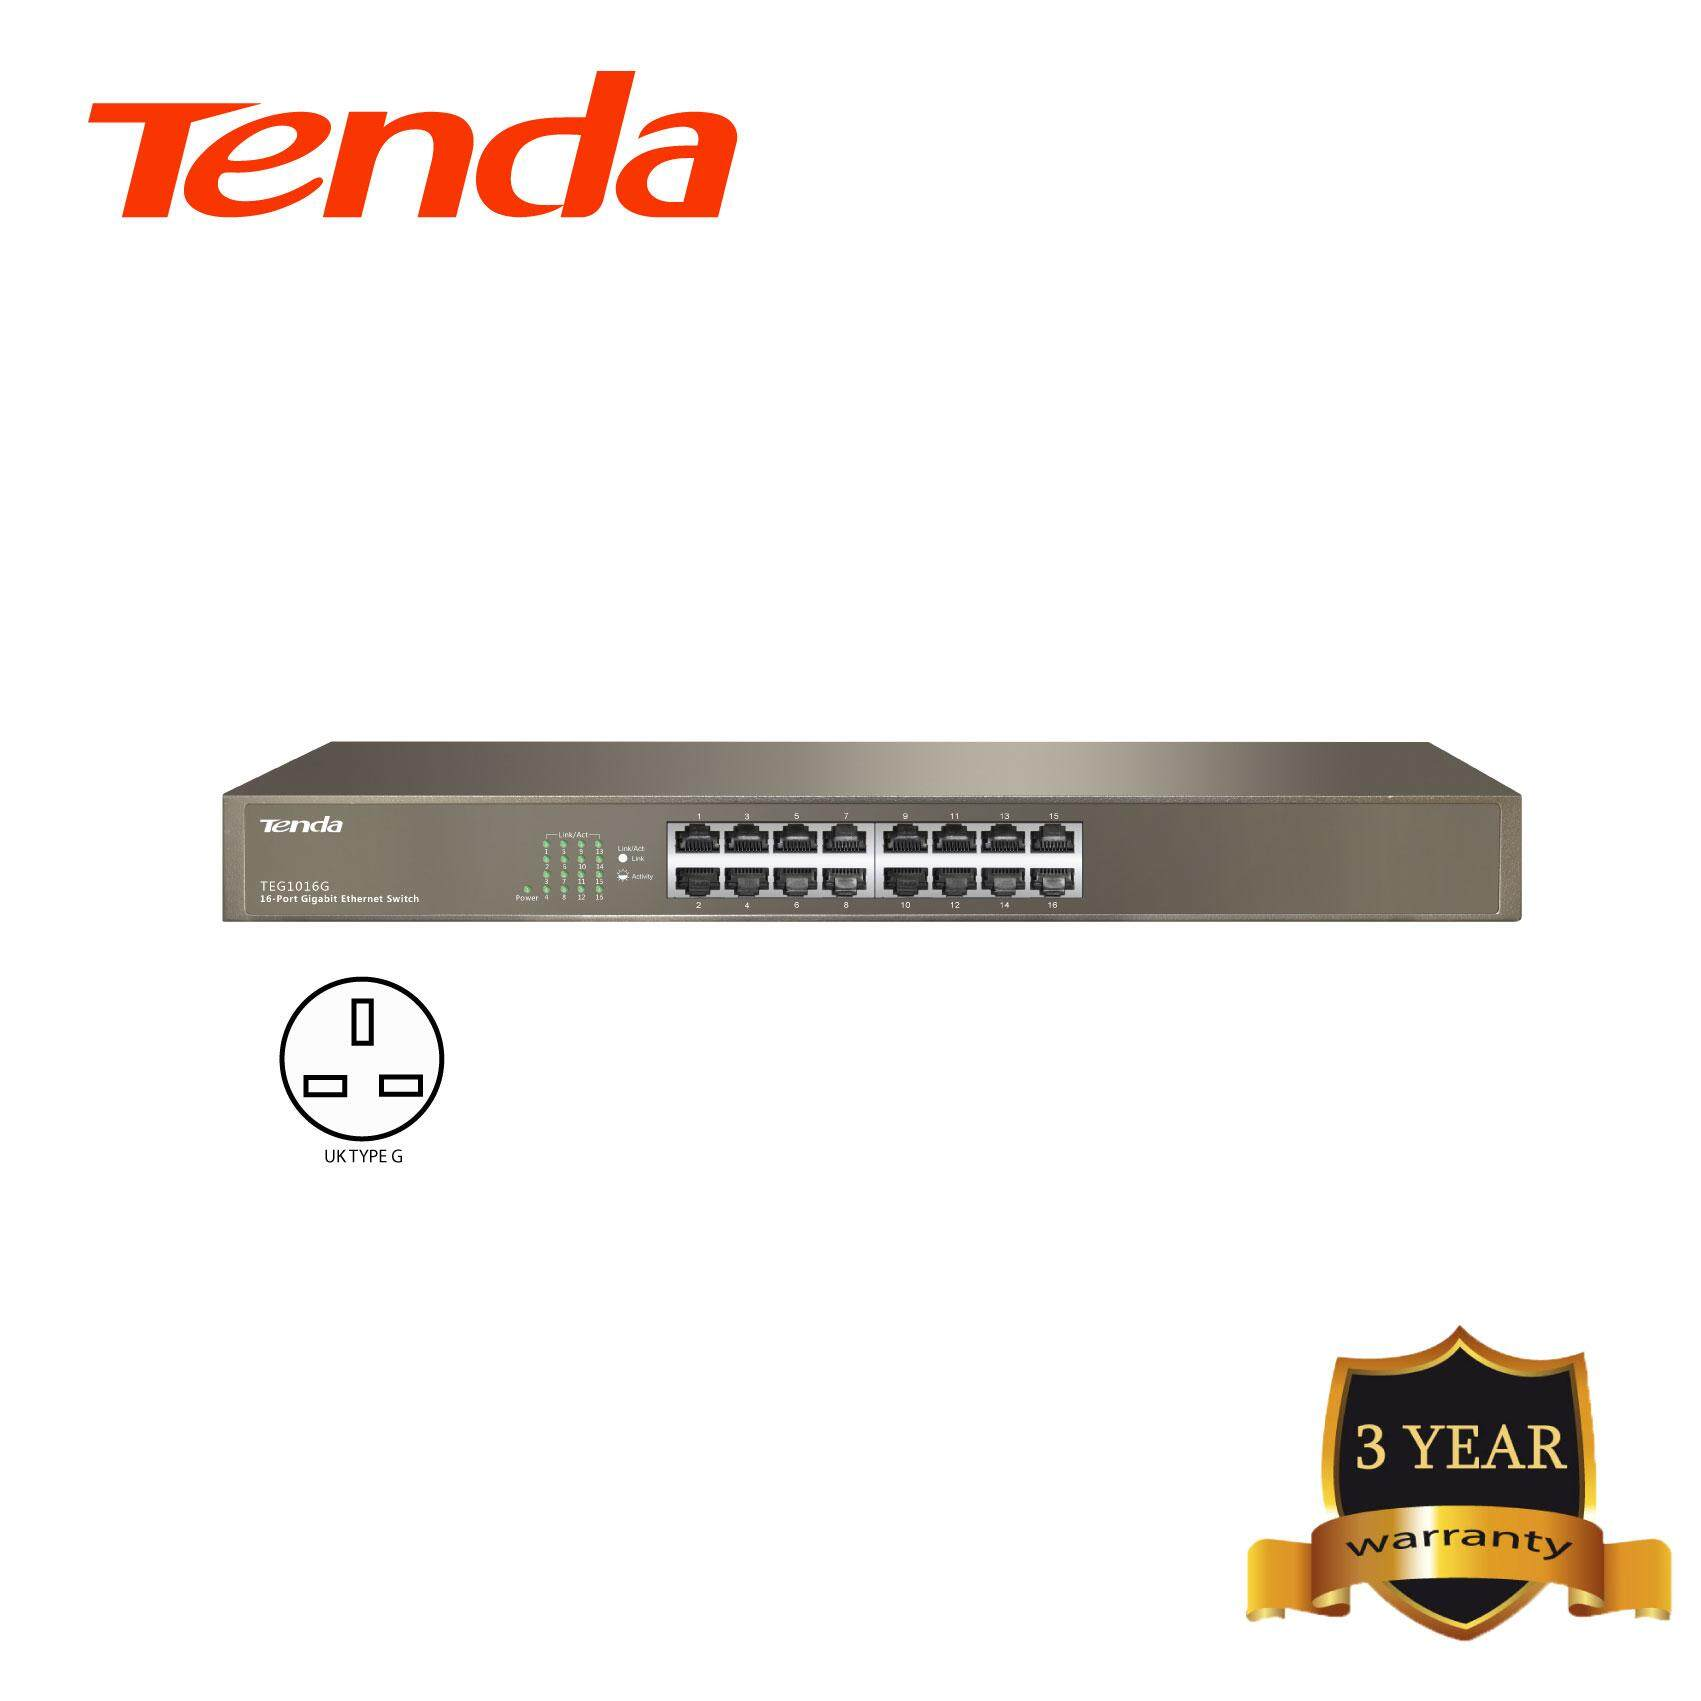 Tenda TEG1016D 16-port Gigabit Desktop/Rachmount Switch